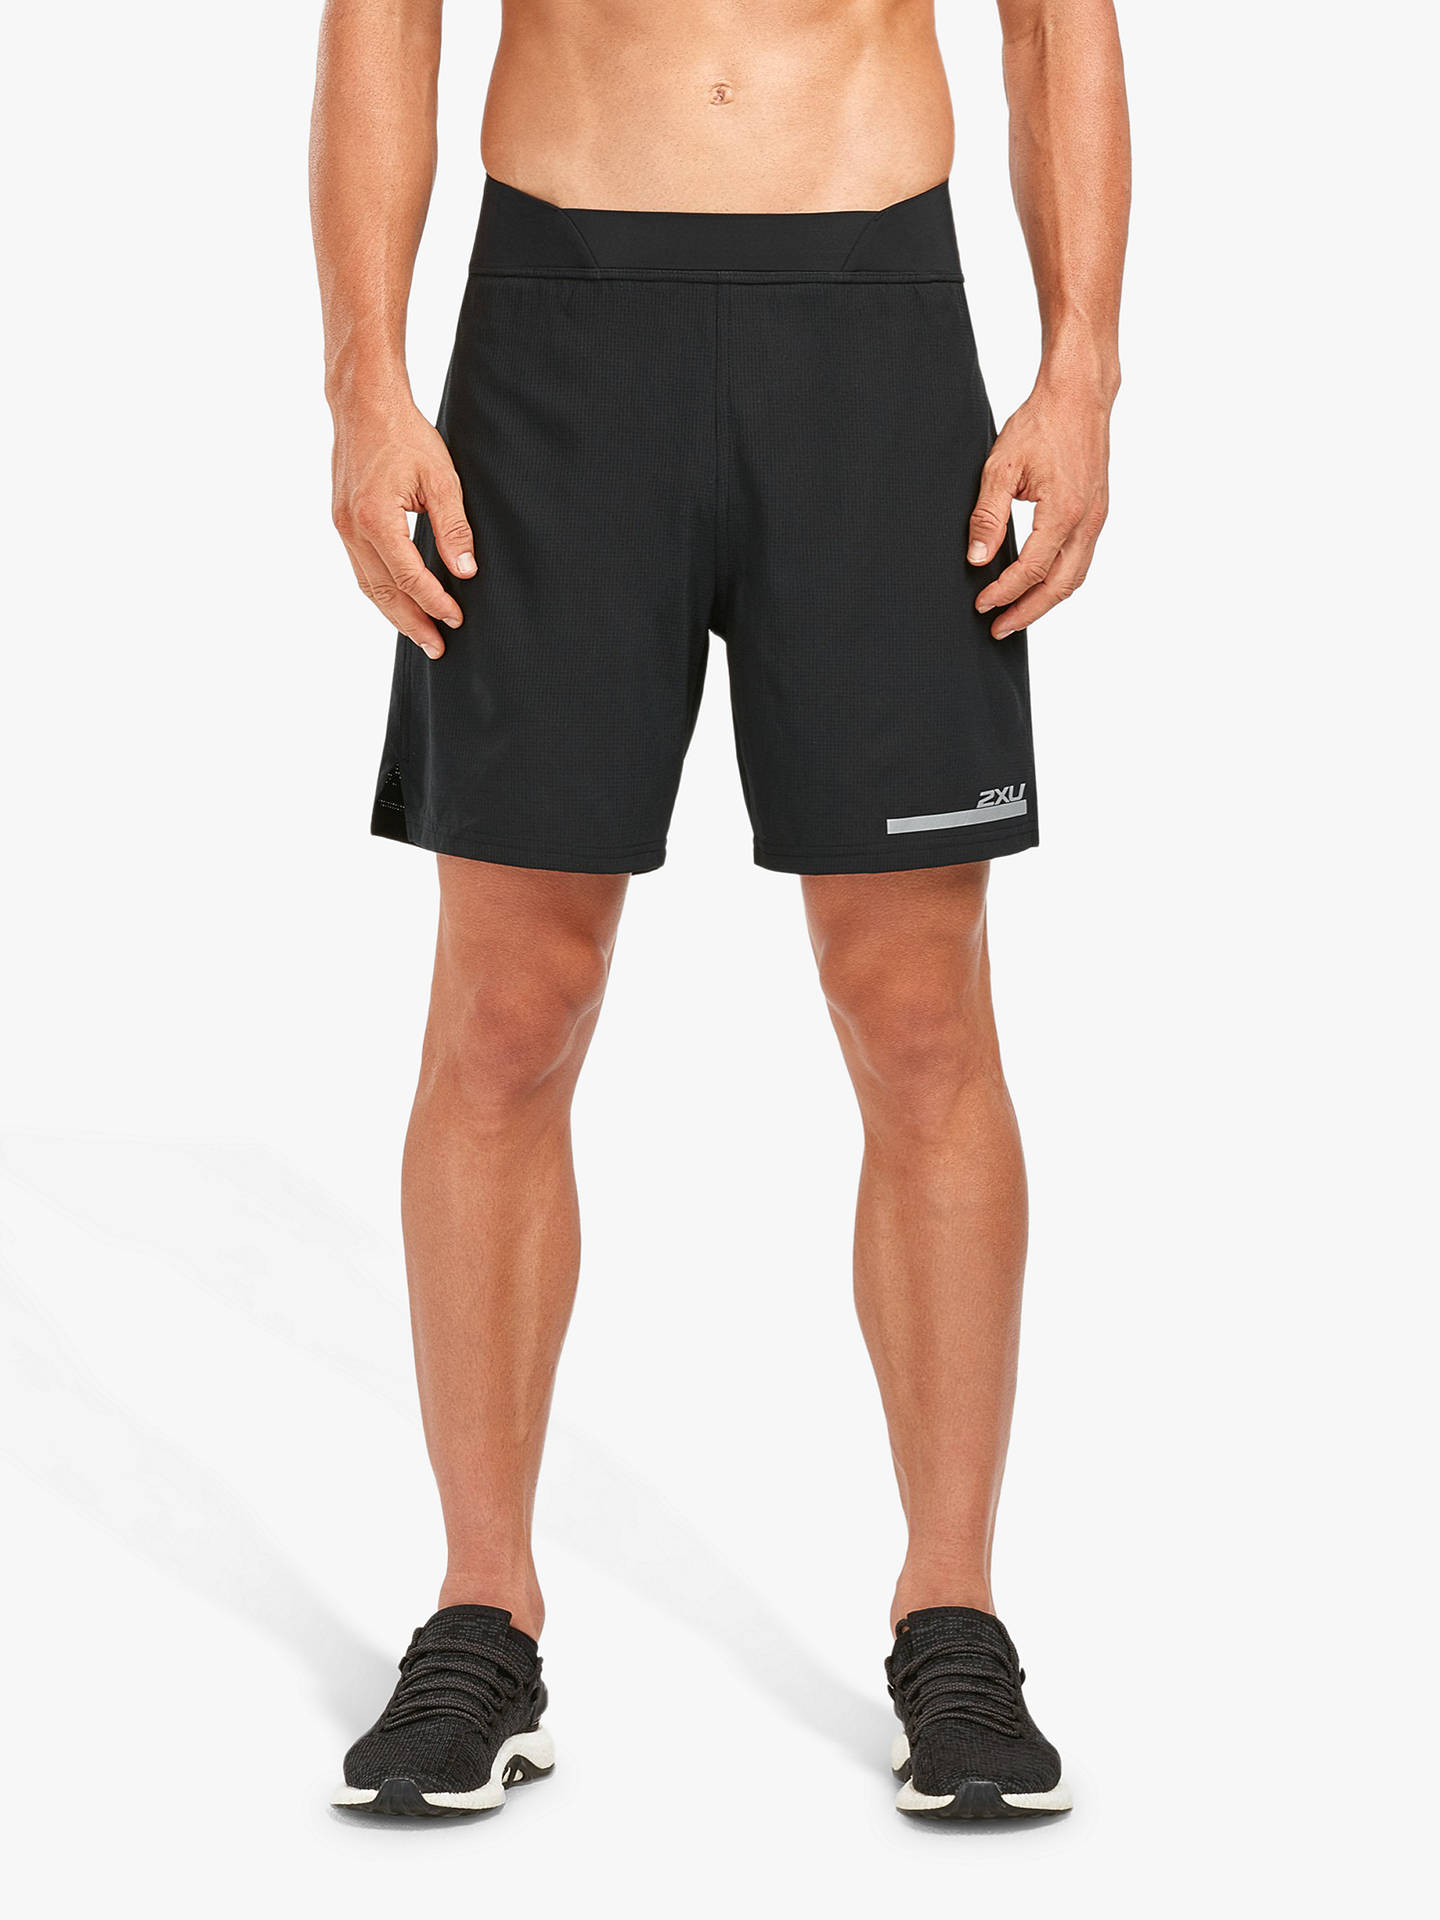 cfadb551c6c5f Buy 2XU Compression Double Layer 7 Inch Training Shorts, Black/Silver, S  Online ...